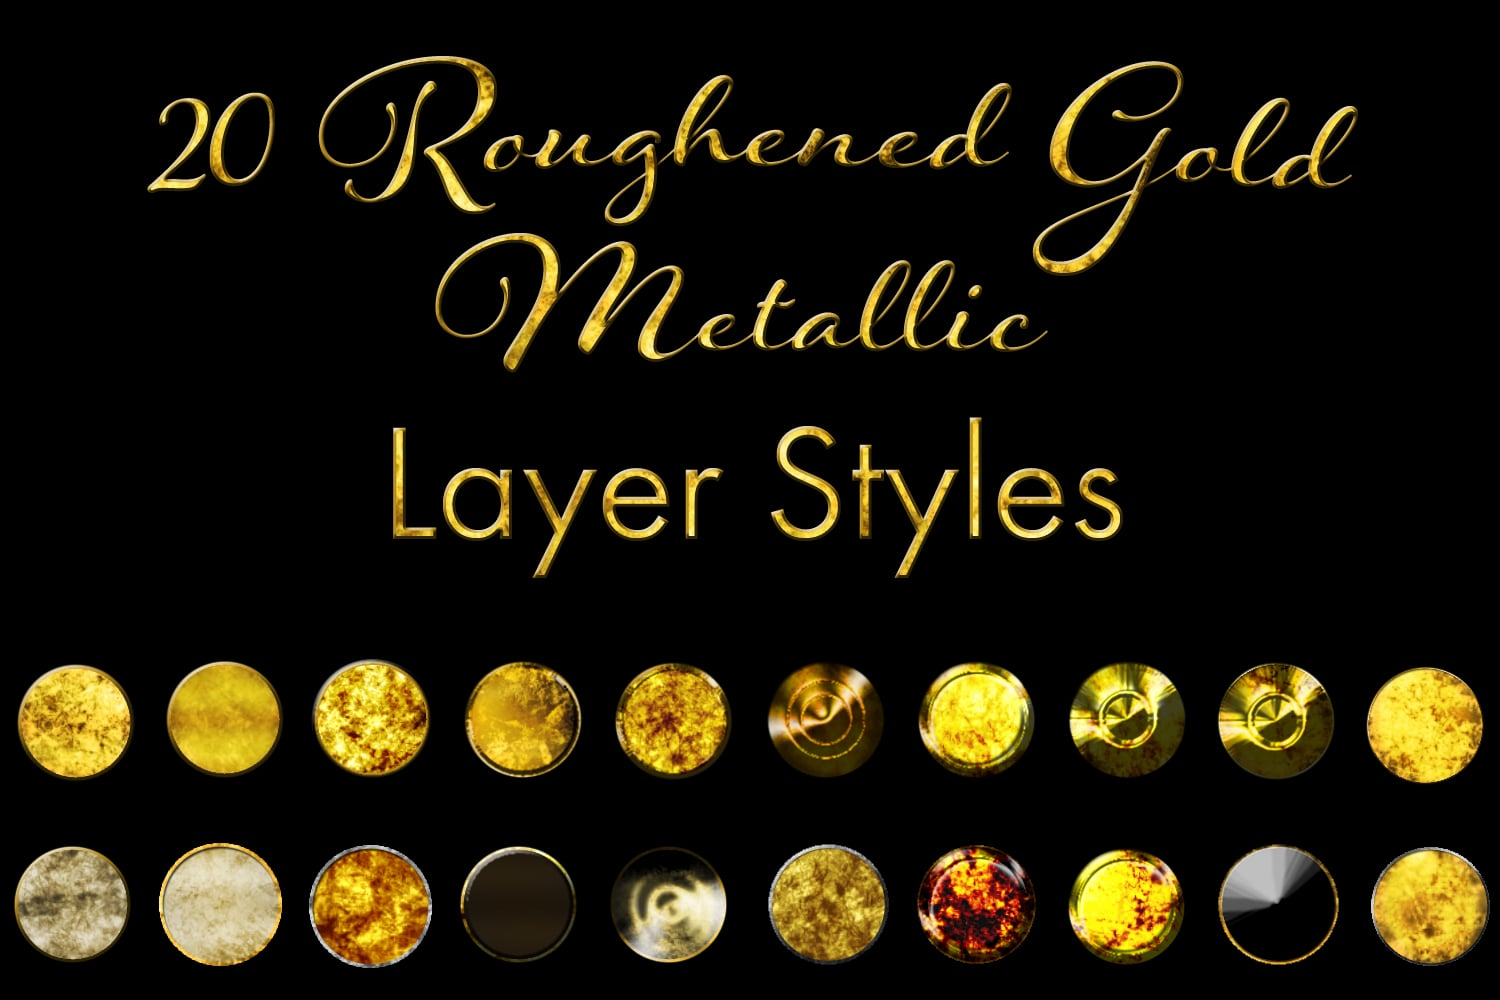 60 Best Photoshop Layer Styles - Gold Metallic, Rose Gold, Silver Metallic - $7 - ee3f91ffe6a7ed6ad56e781243dce230 resize